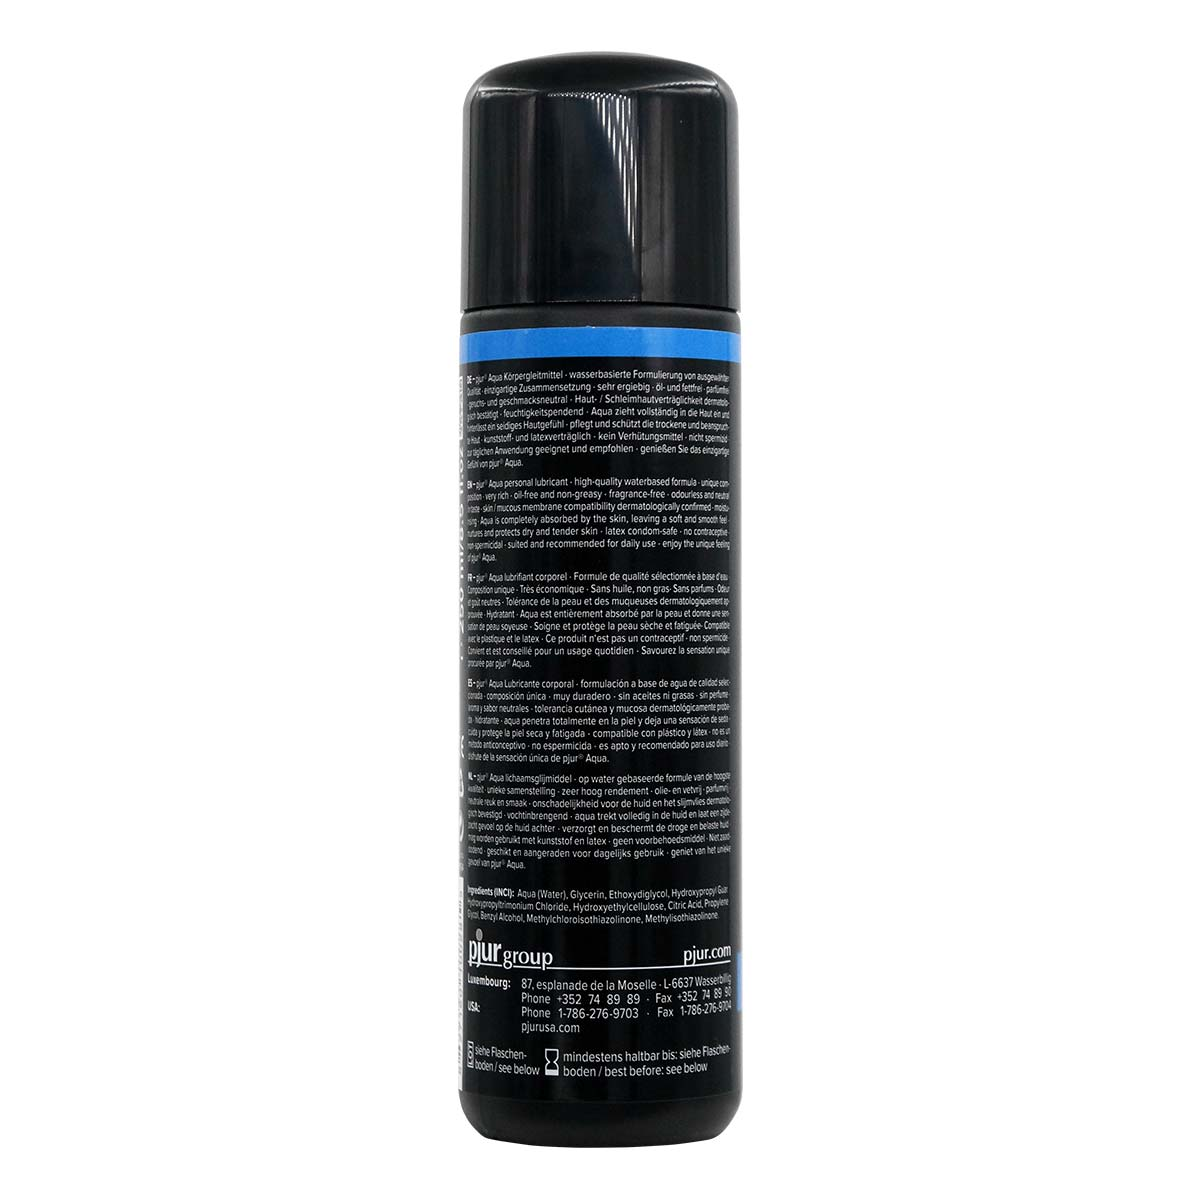 pjur AQUA 250ml Water-based Lubricant